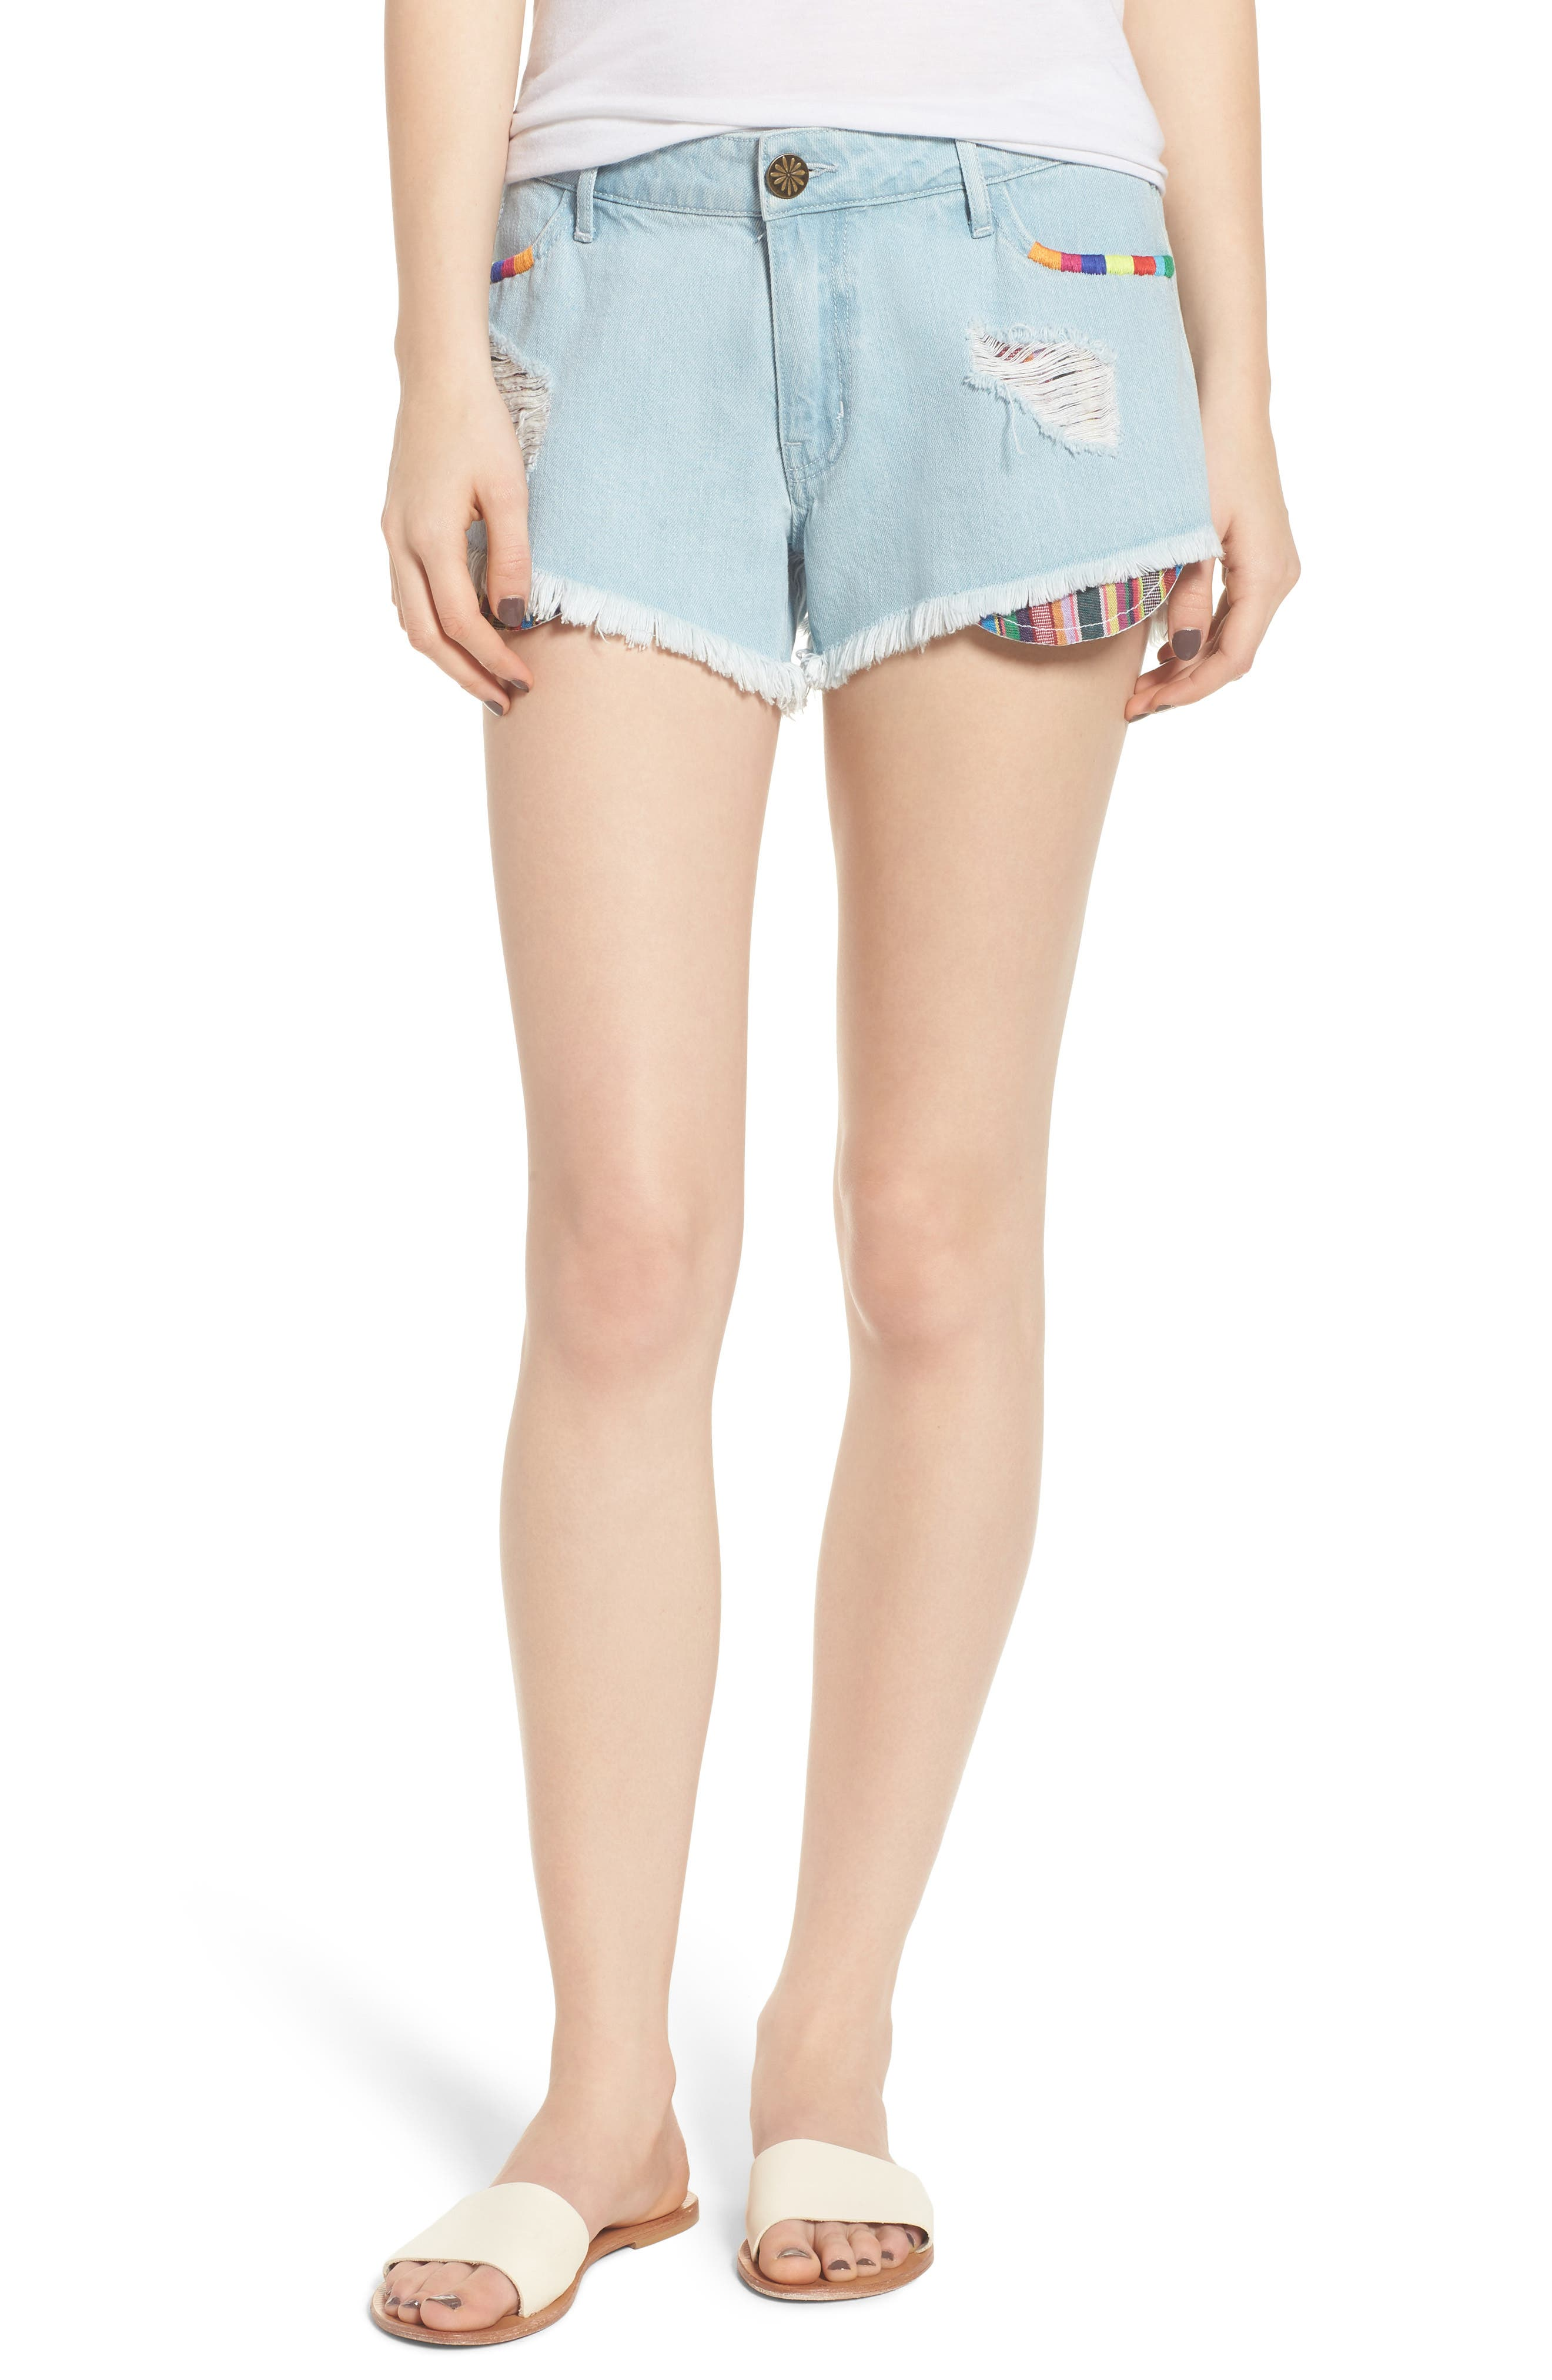 Cabo Cutoff Denim Shorts,                         Main,                         color, 400